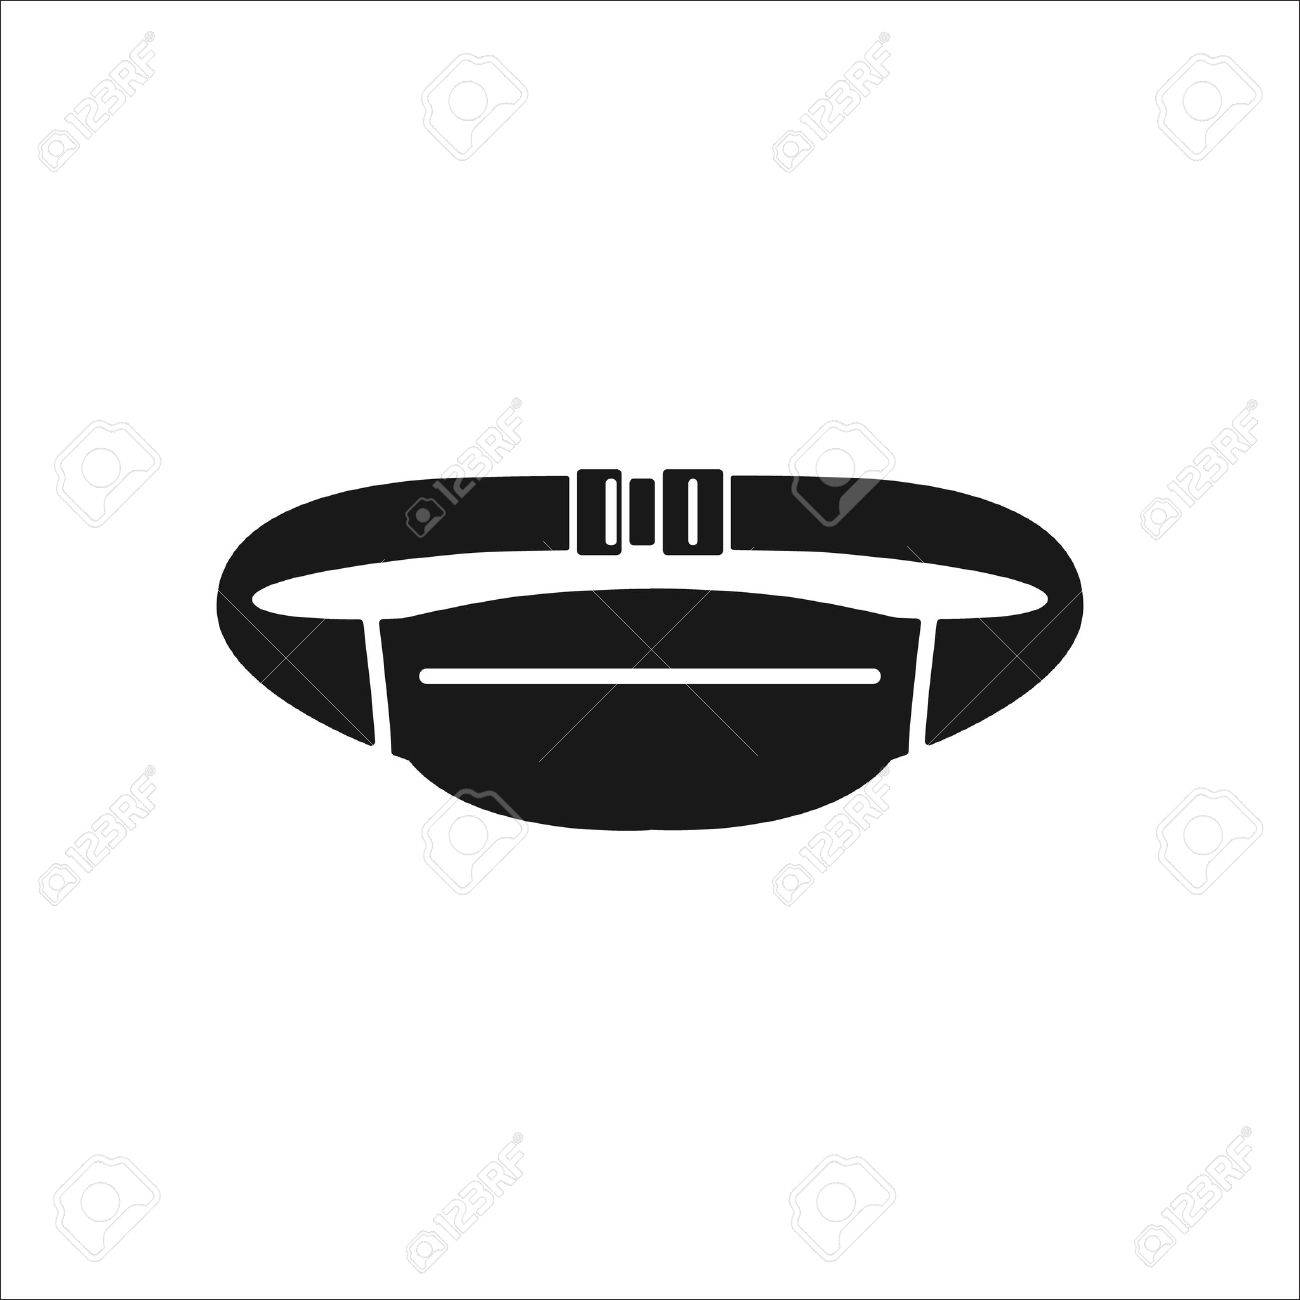 Waist sport bag sign simple icon on background - 58220924